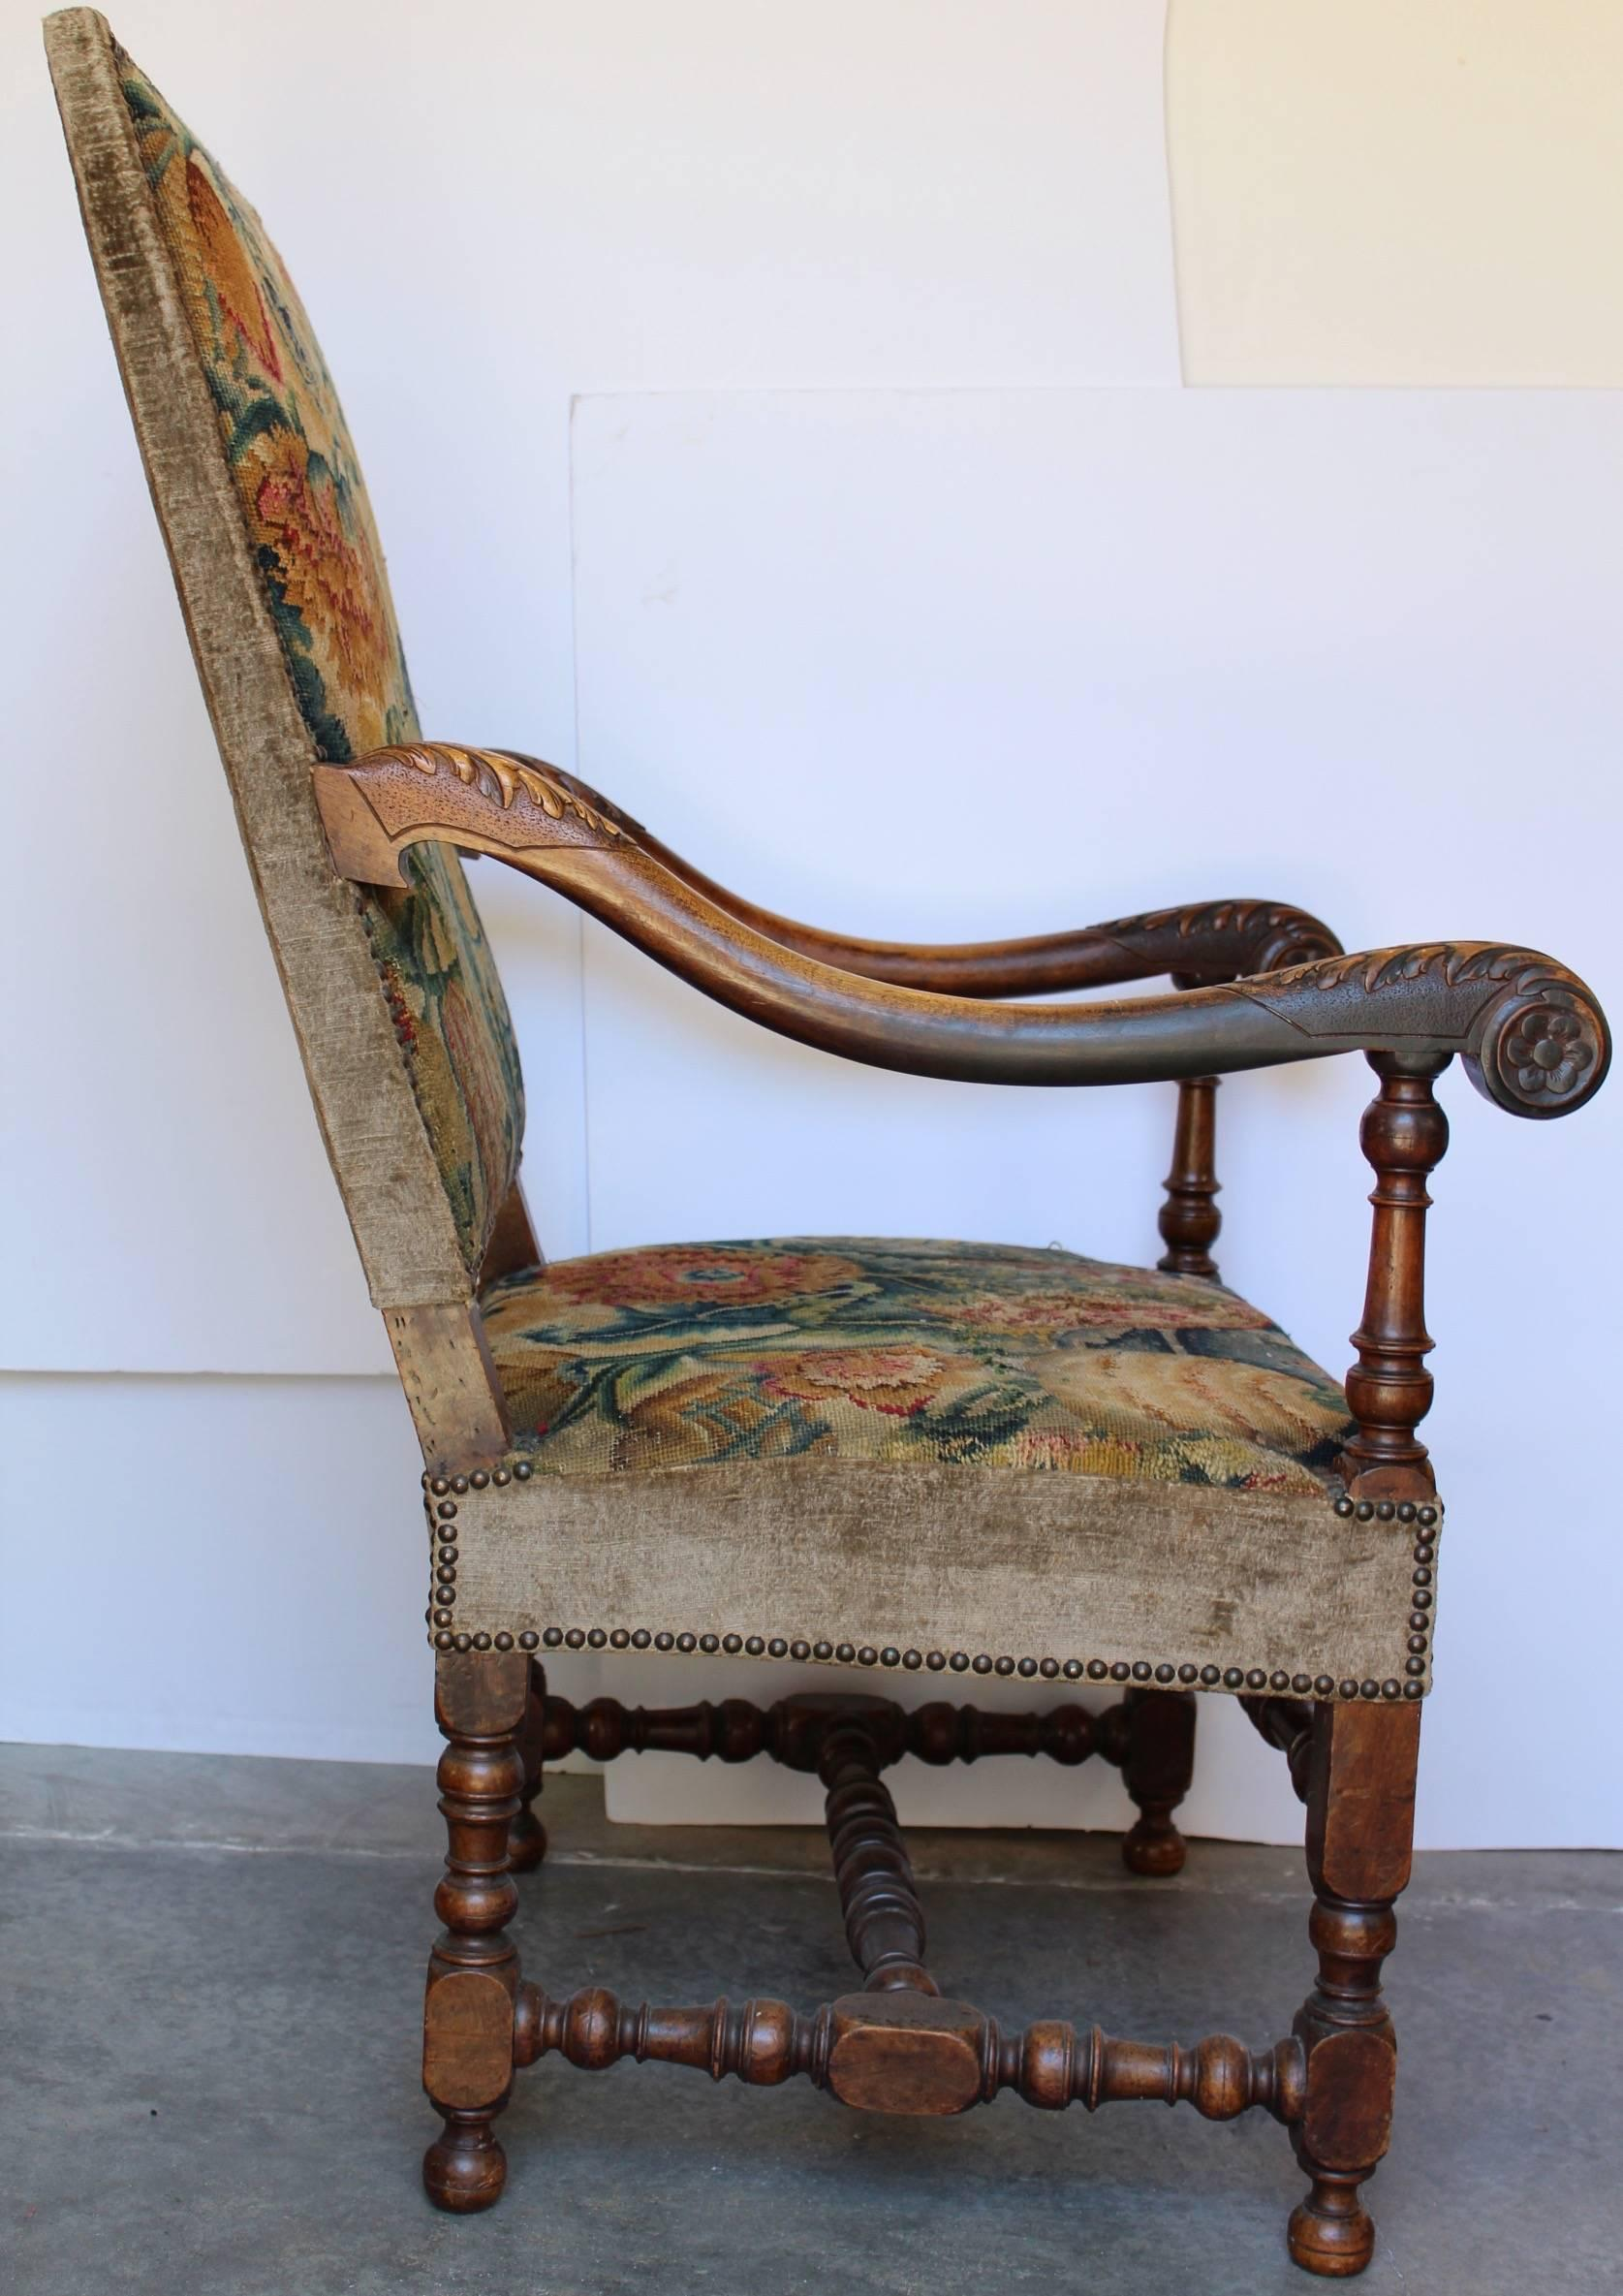 Louis Xiii Fauteuil With Its Original Tapestry Circa 1630 For Sale At 1stdibs